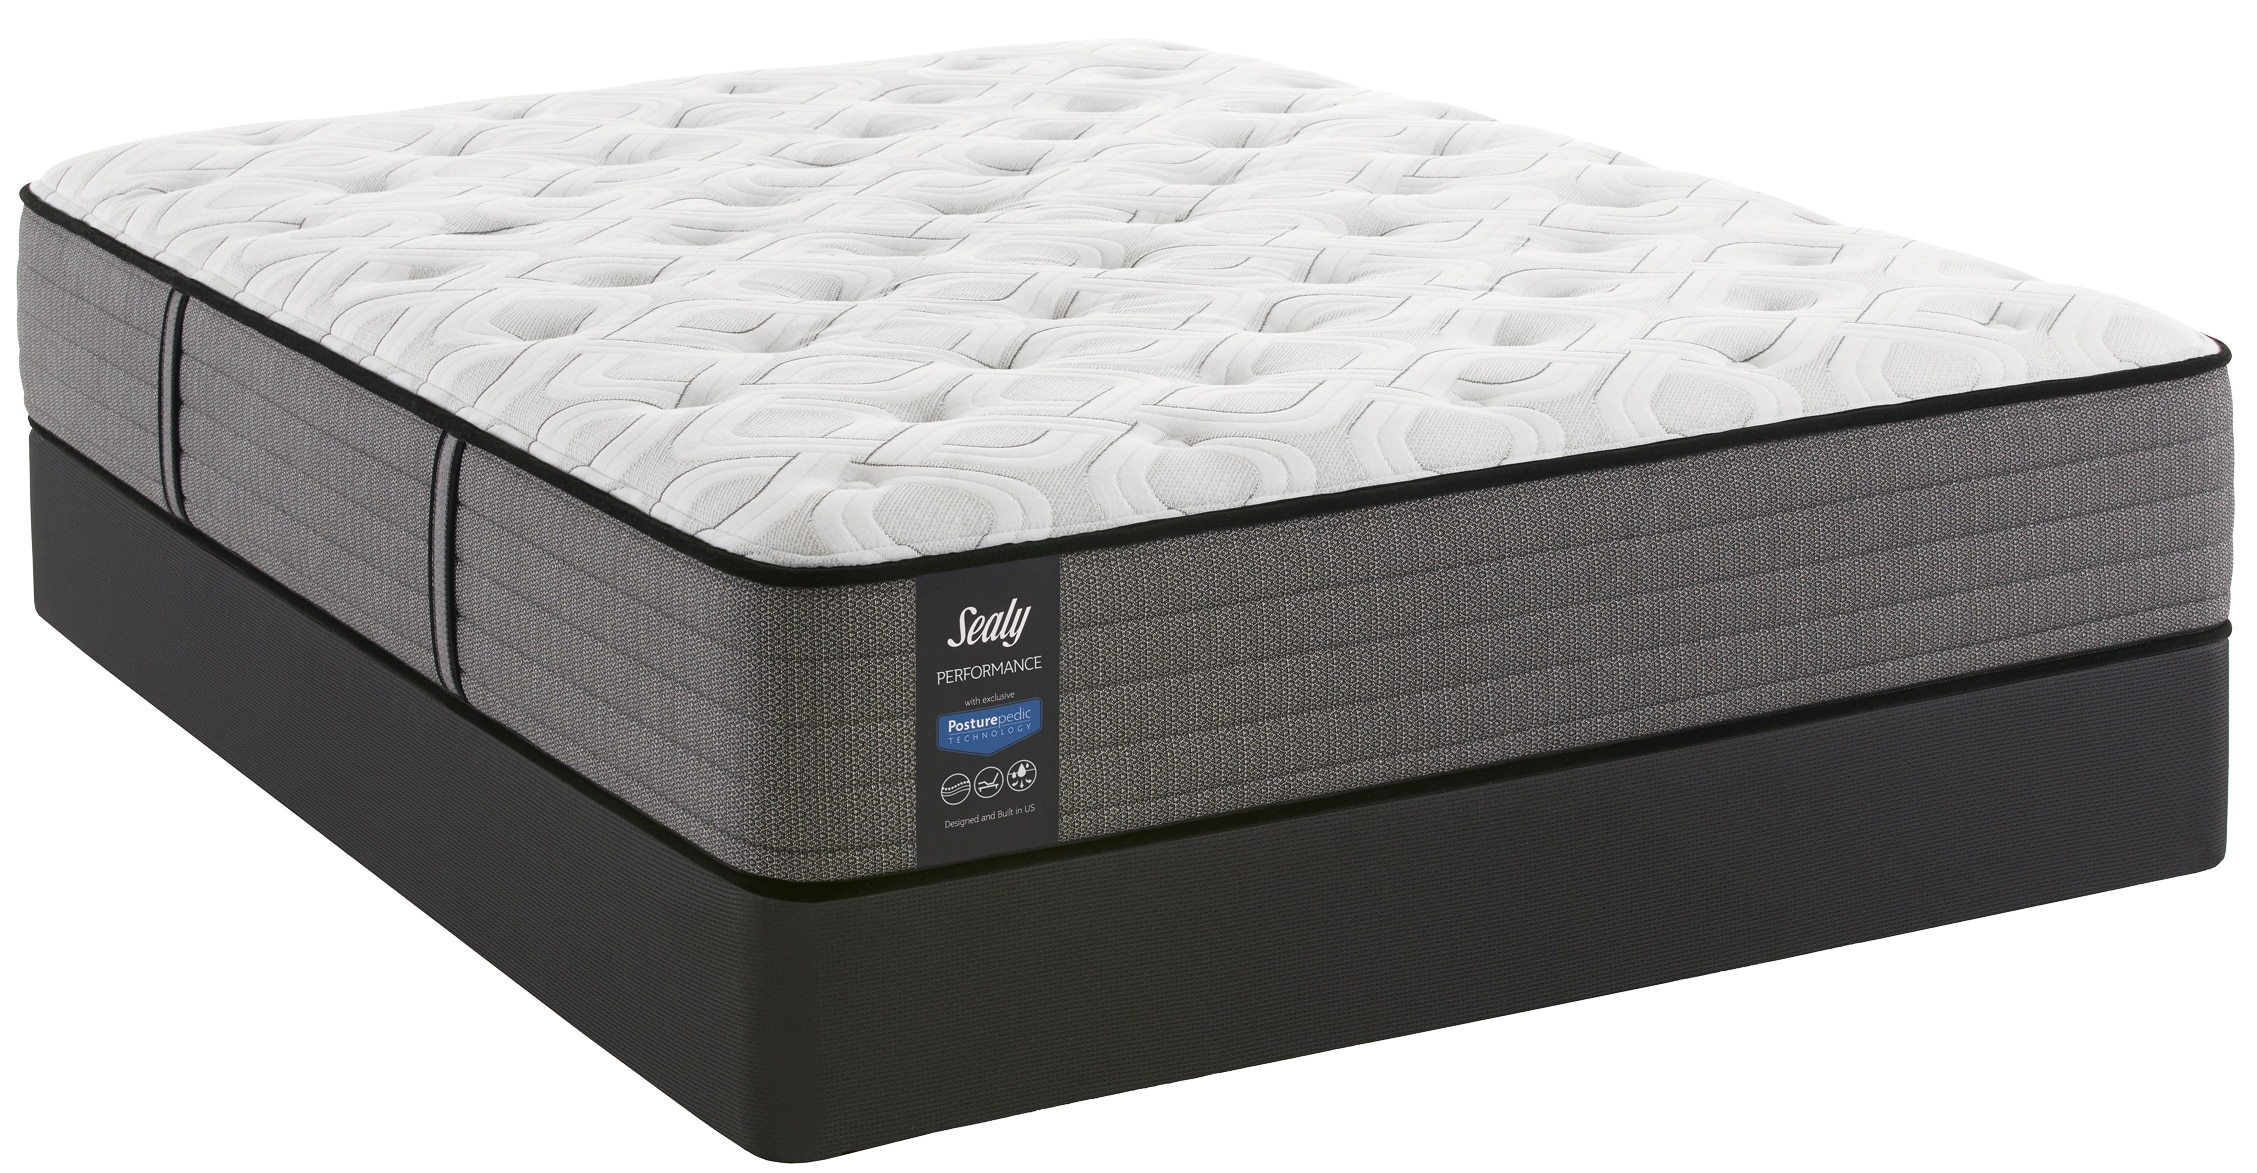 Morning dove firm king mattress and boxspring set levin for Levin furniture mattress